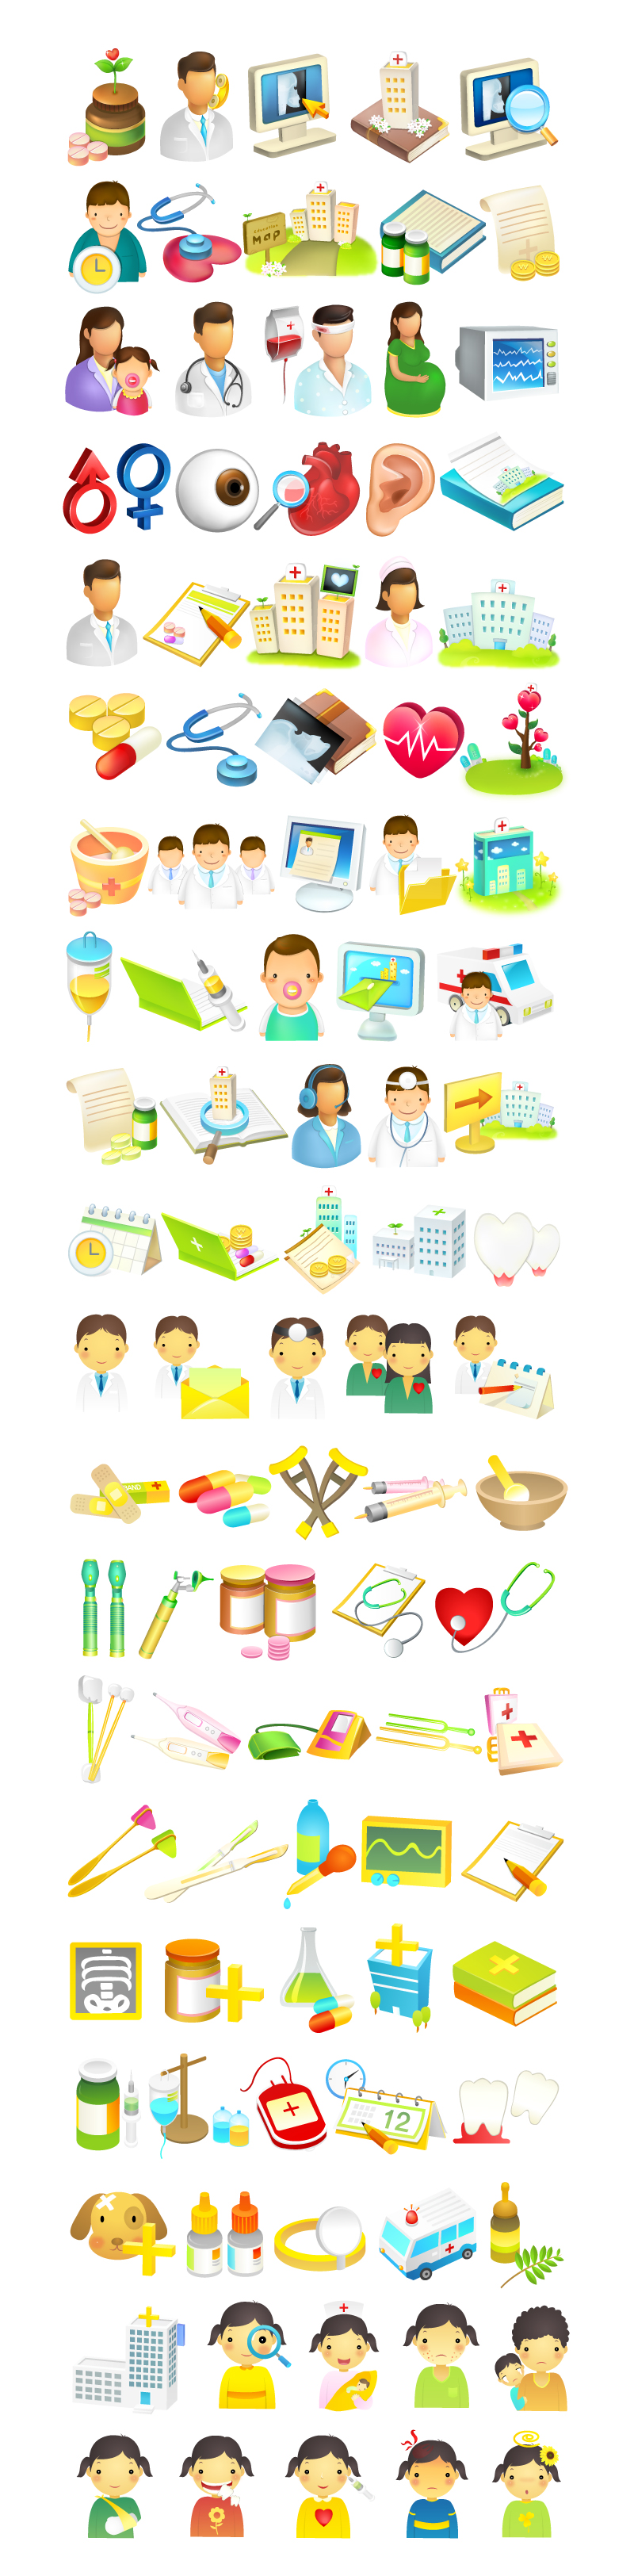 Cartoon Medical Icons Vector